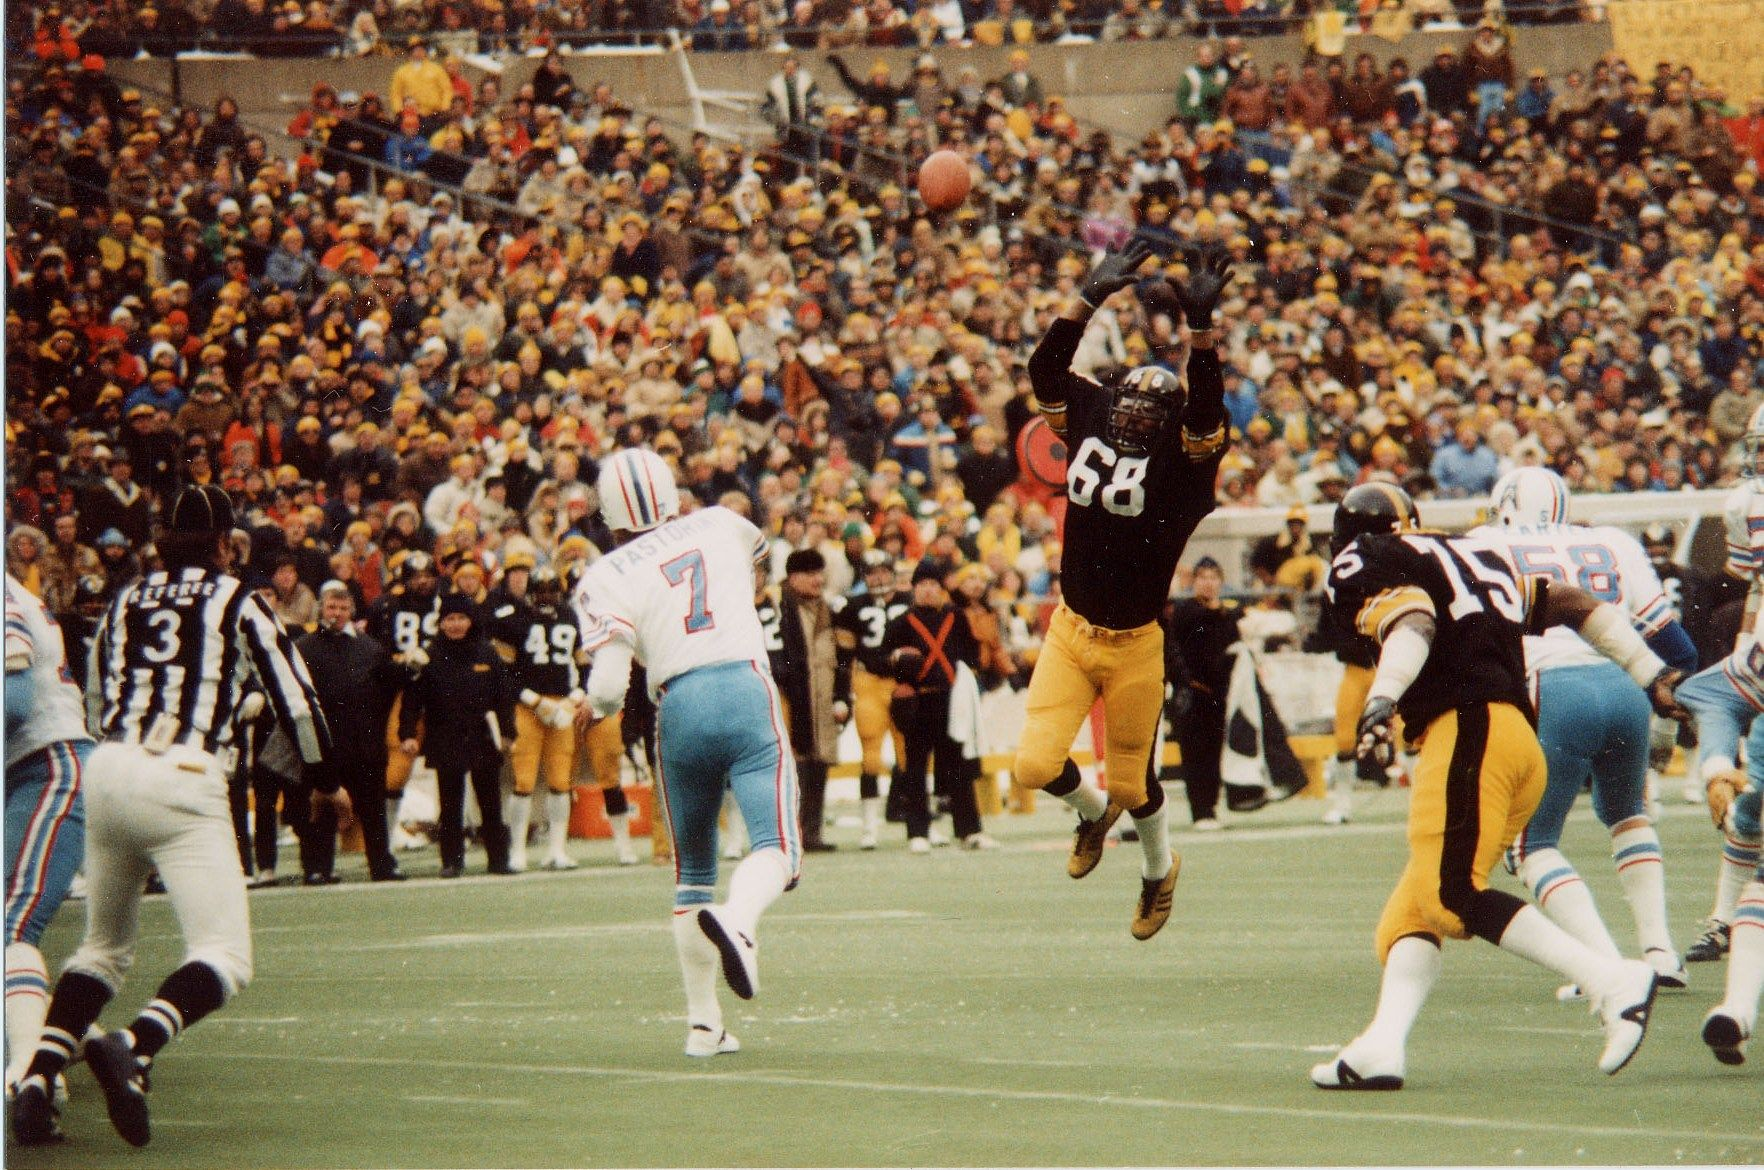 Dan pastorini fires into the steelers defense during the